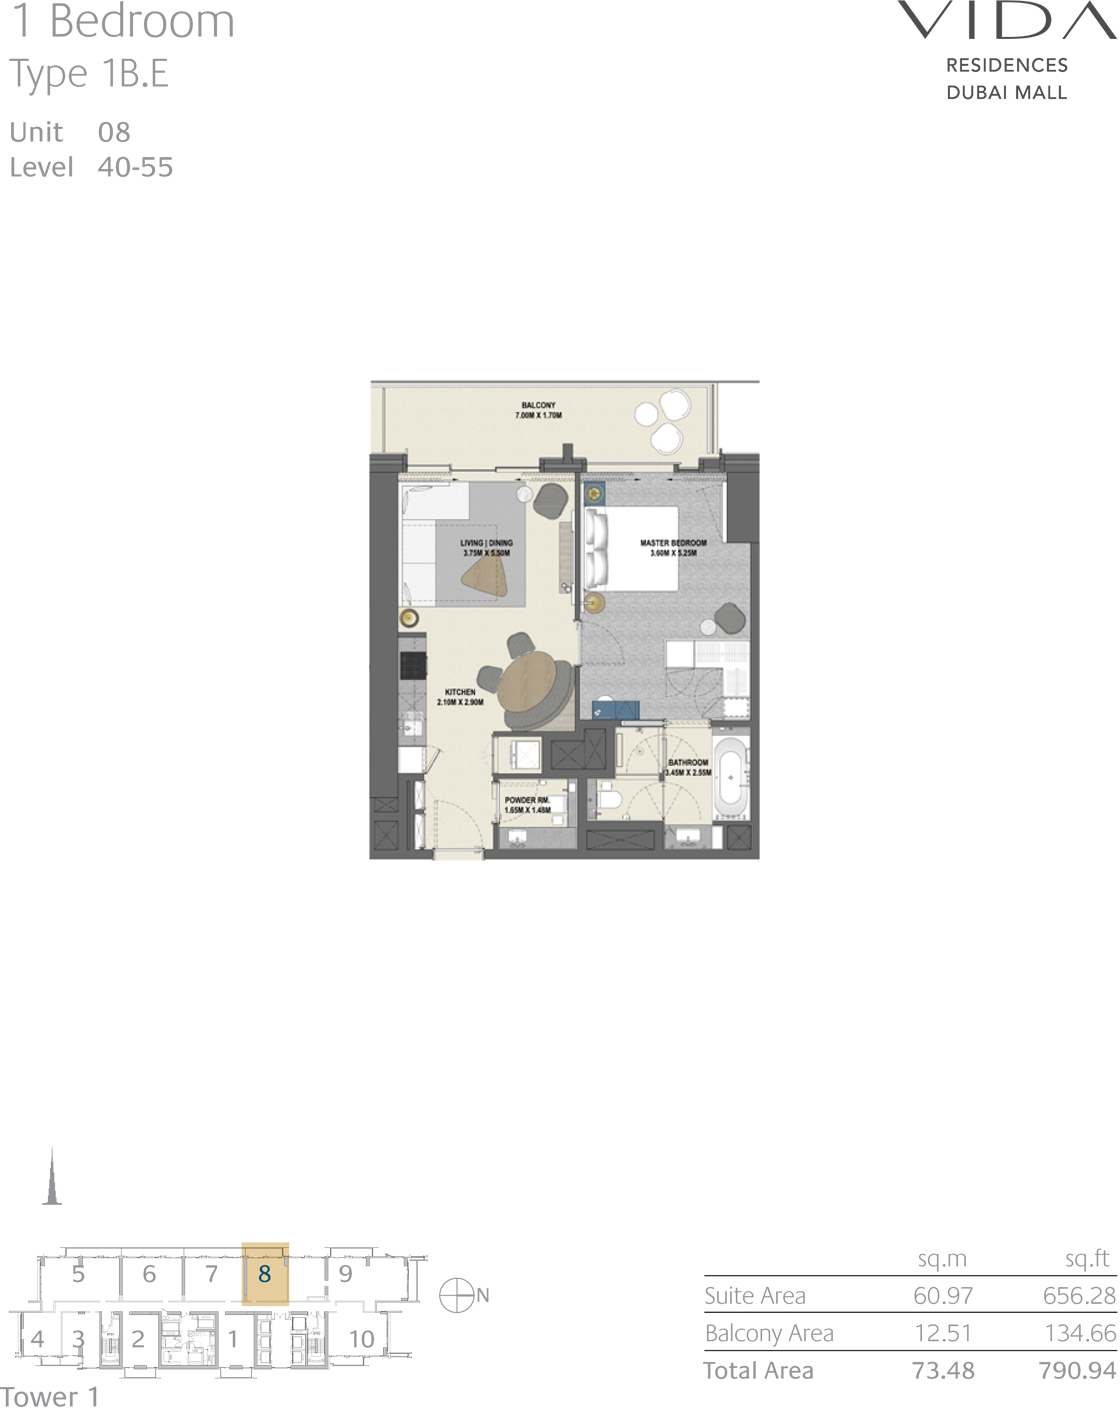 1 Bedroom Type 1B.E Unit 08 Level 40-55